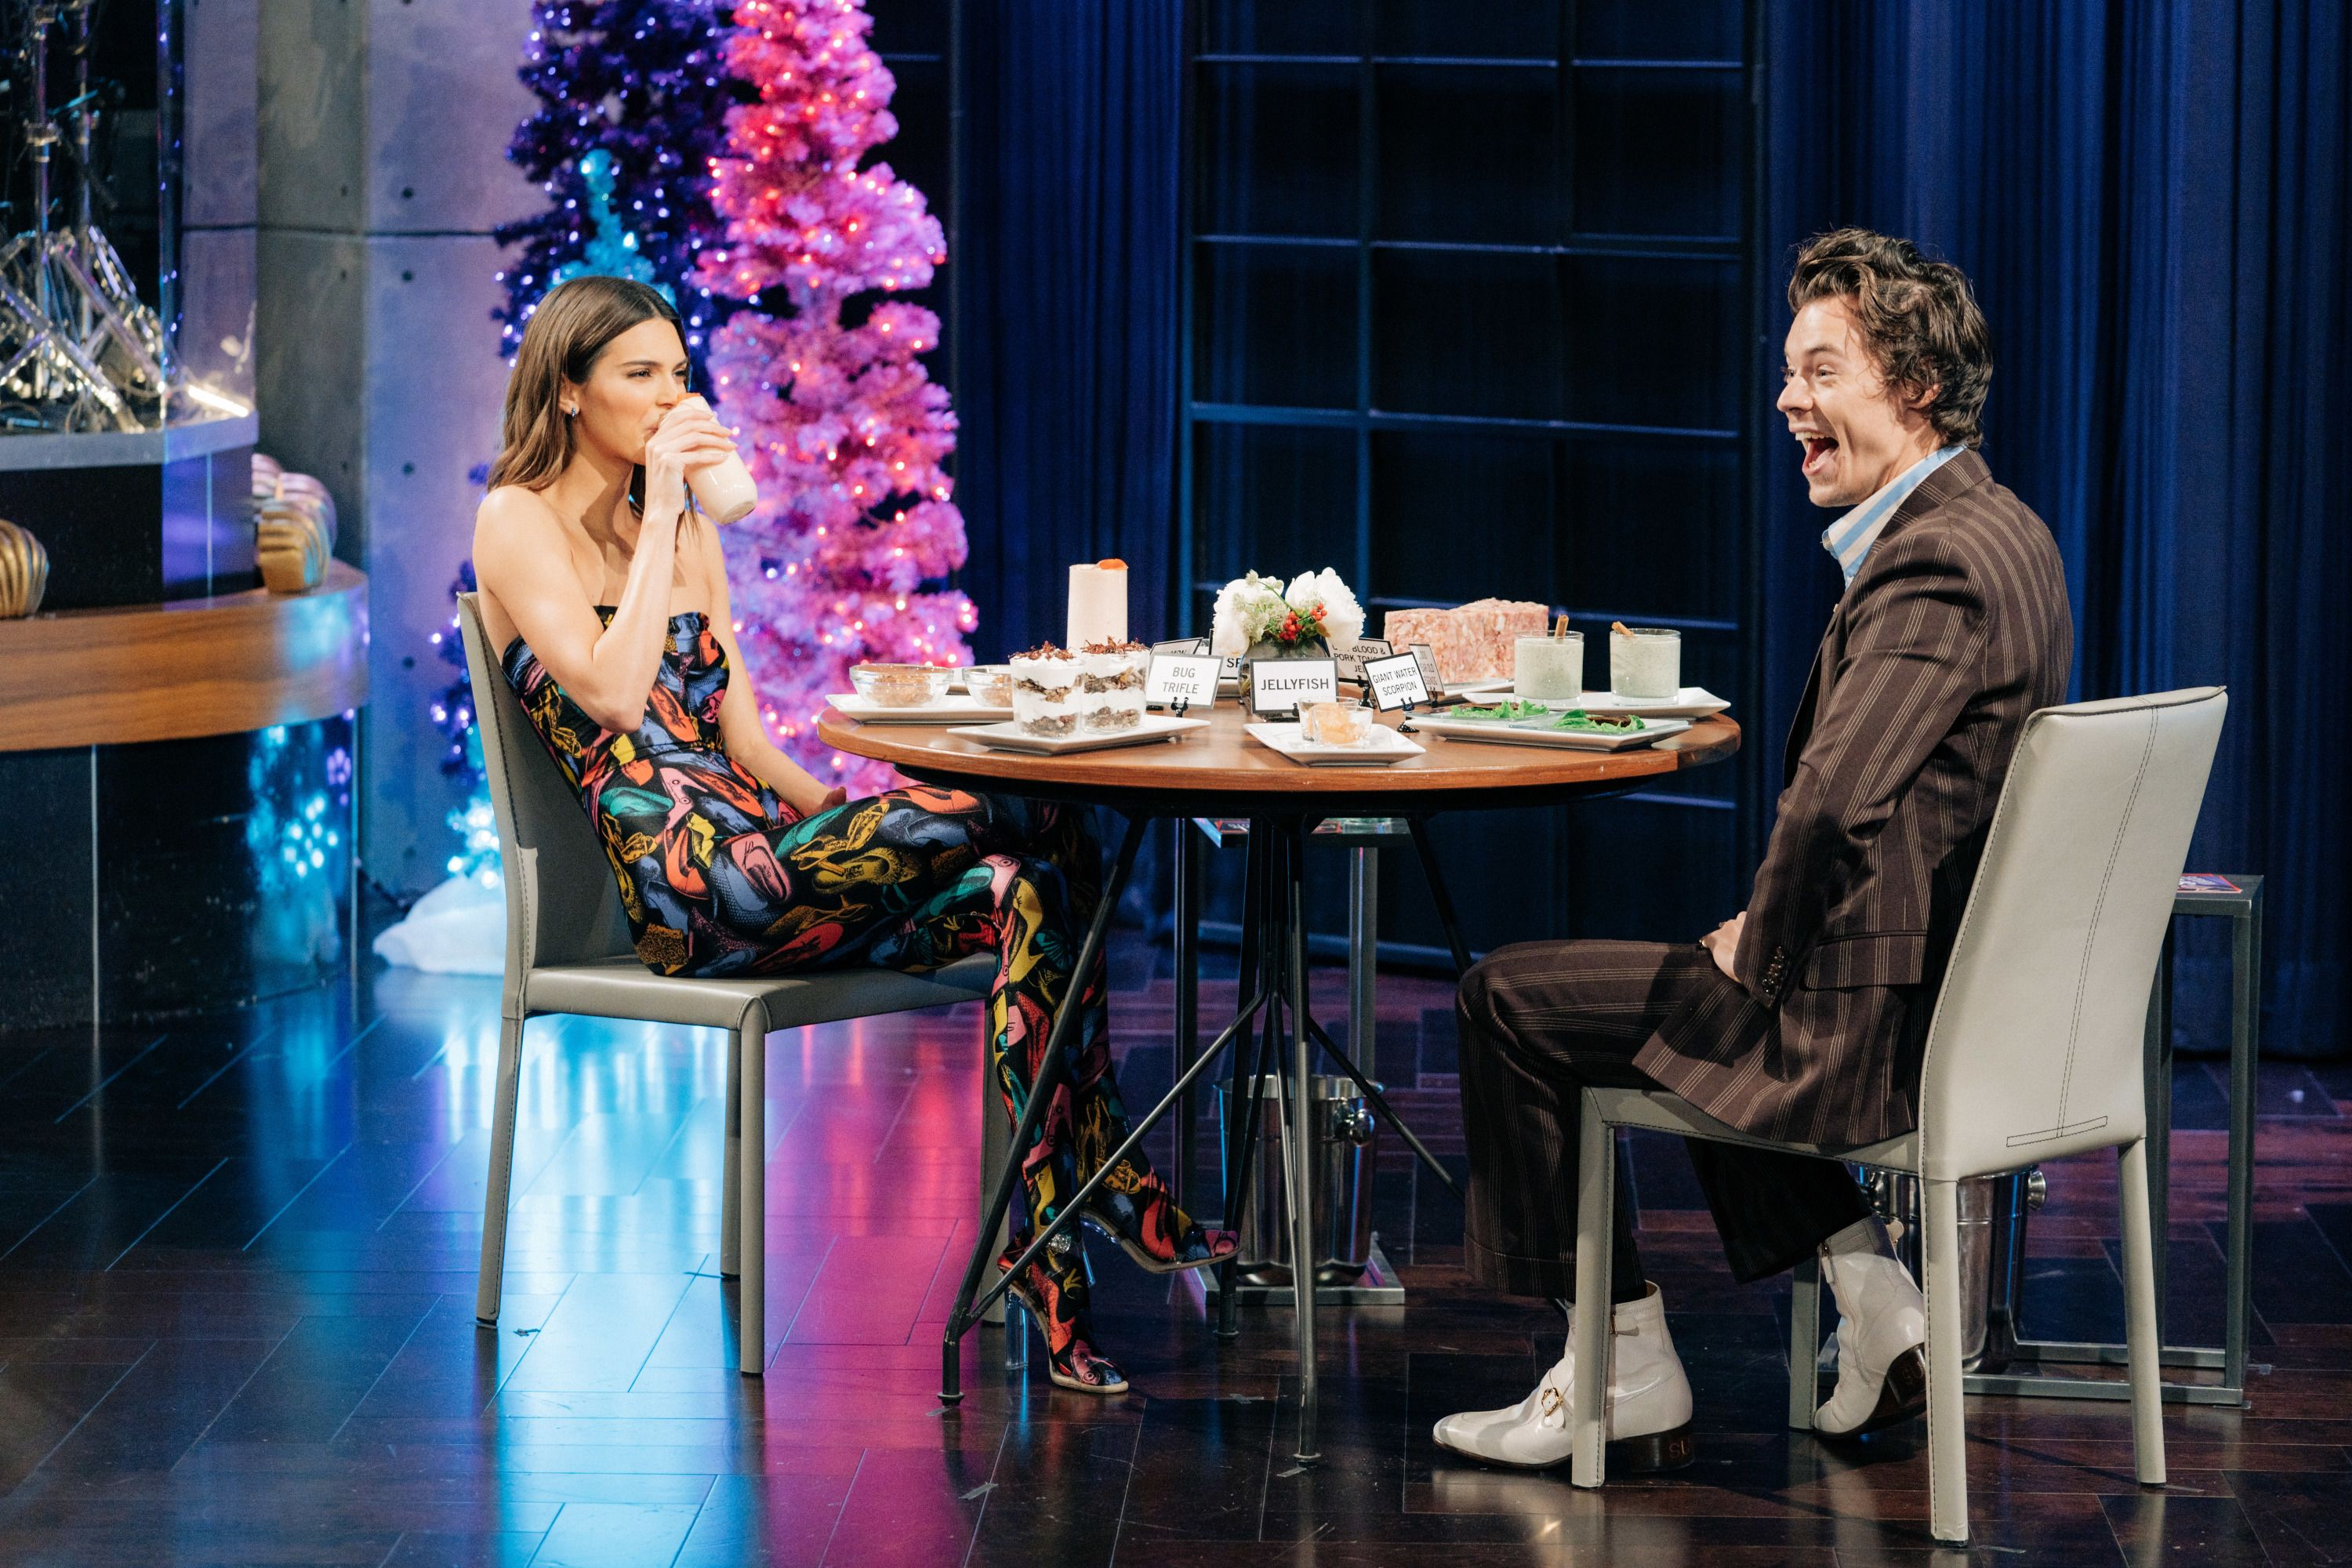 Kendall Jenner (left) and Harry Styles (right) sit at a table eating an array of food